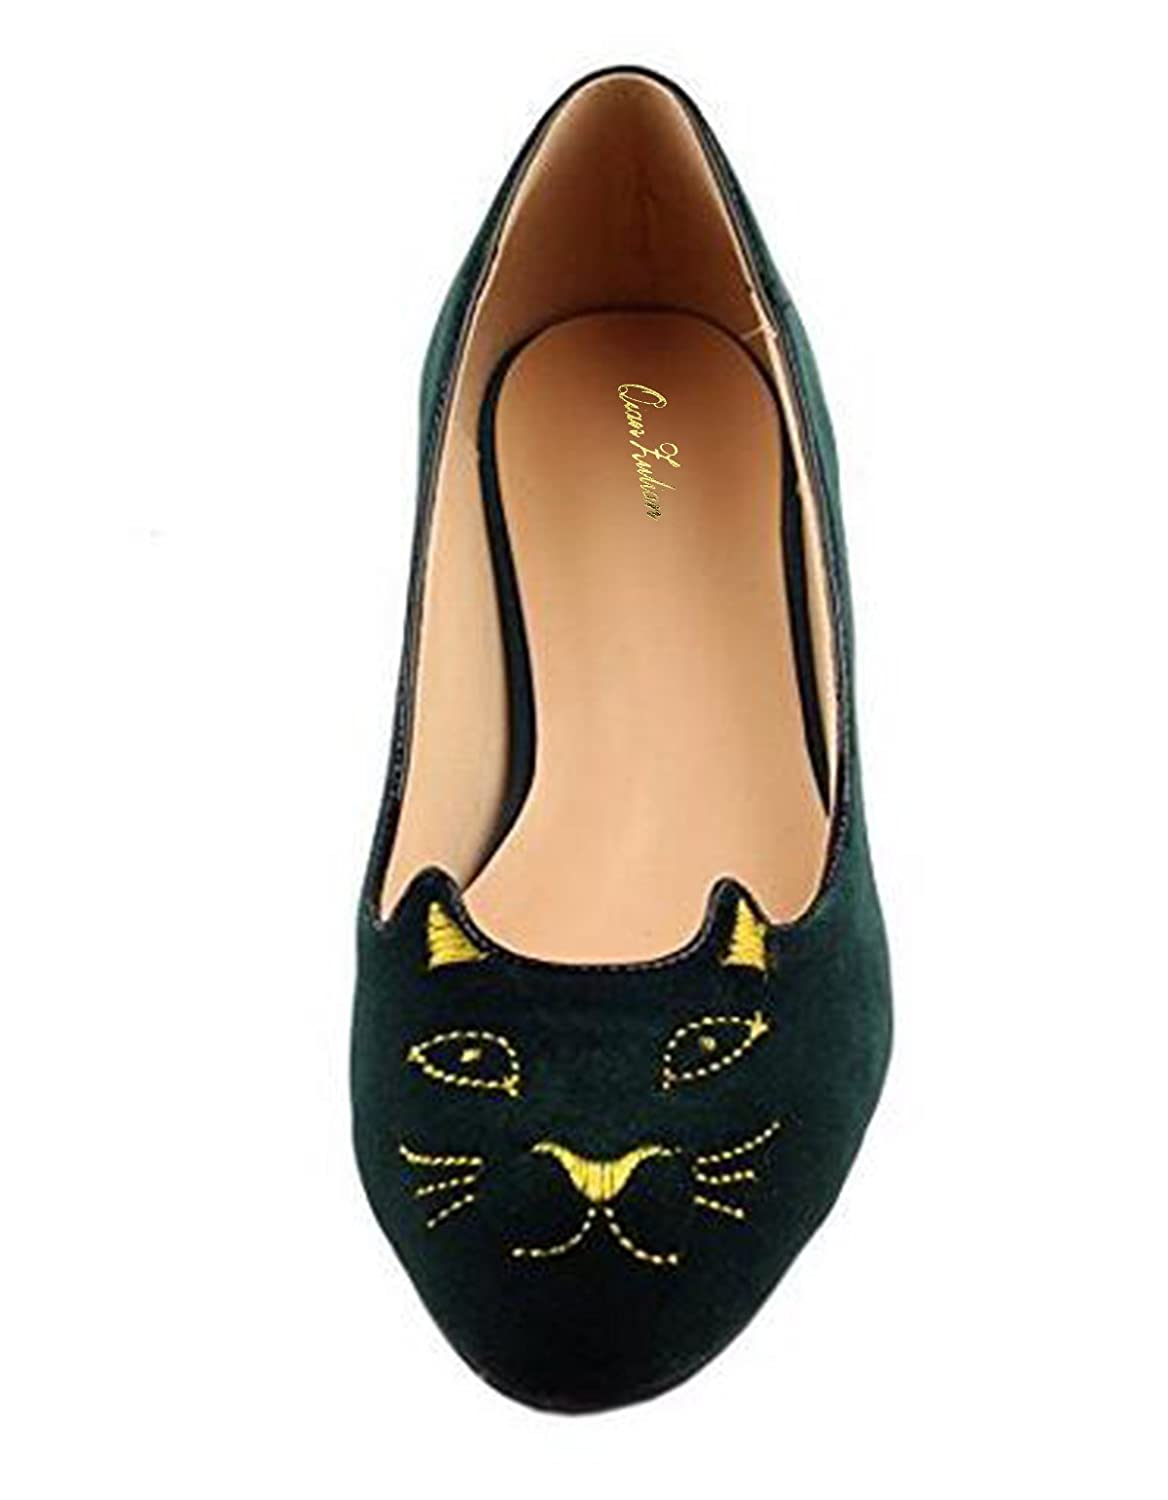 QianZuLian Womens Flats Cat Shape Pumps Round head Slip On Dress Shoes Comfort for Home Leisure On foot B0757V1RK3 9 B(M) US|Dark Green